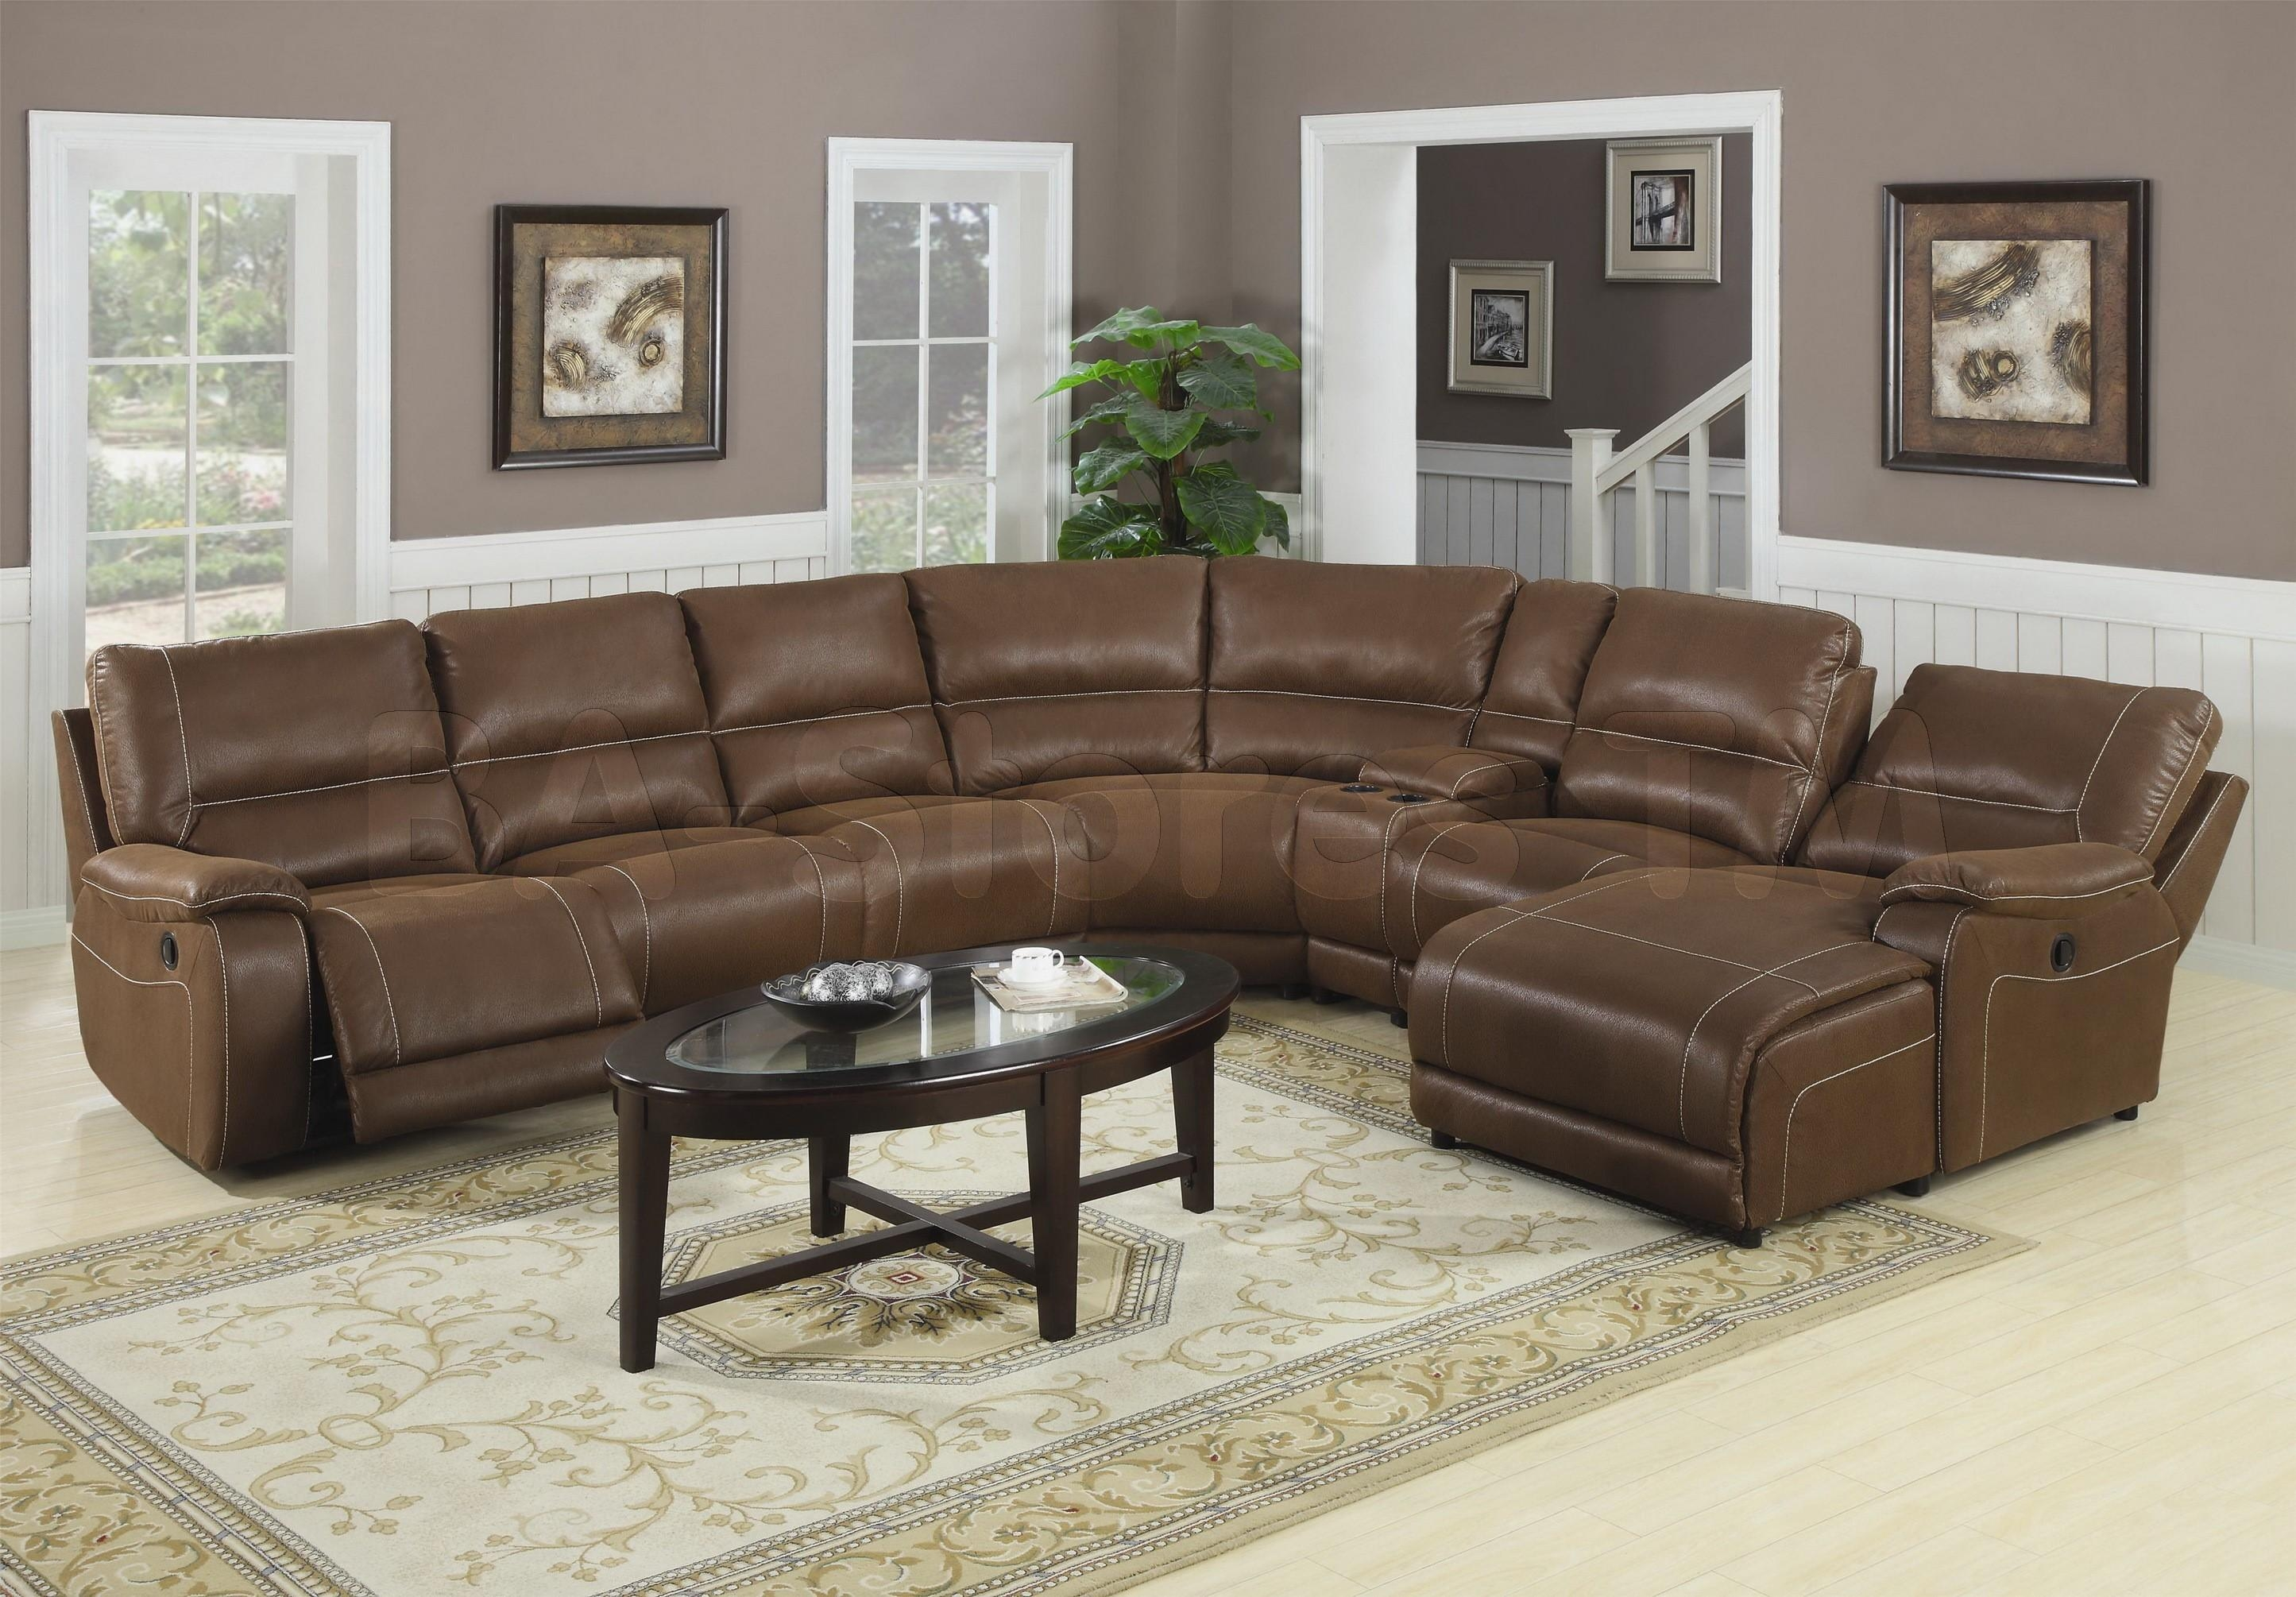 Extra Large Sectional Sofas With Chaise G Home Design For Large Microfiber Sectional (View 10 of 20)